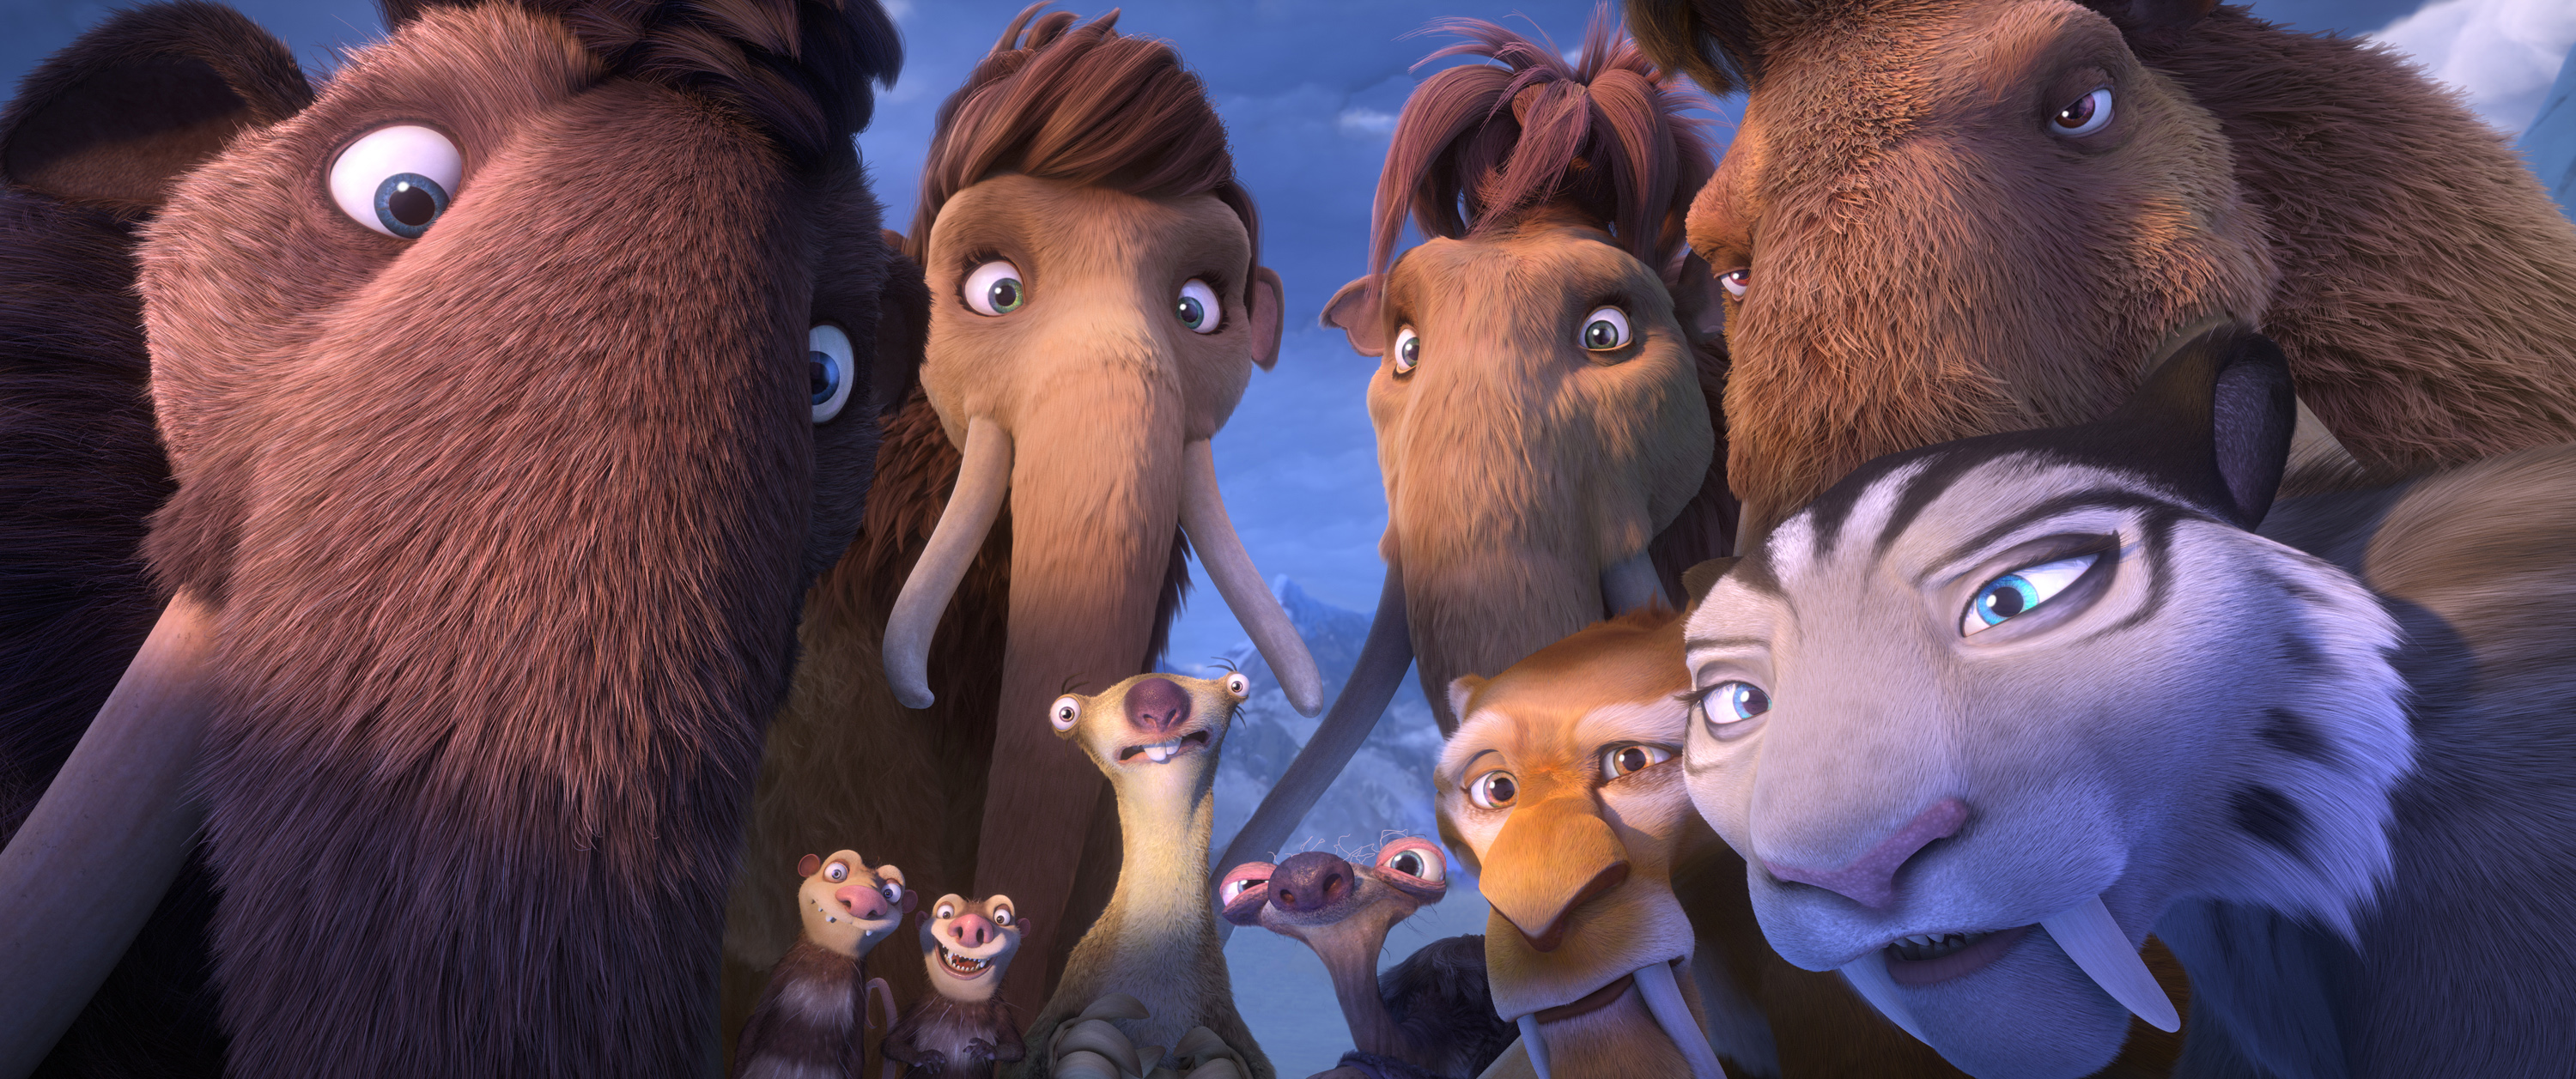 #IceAge #CollisionCourse